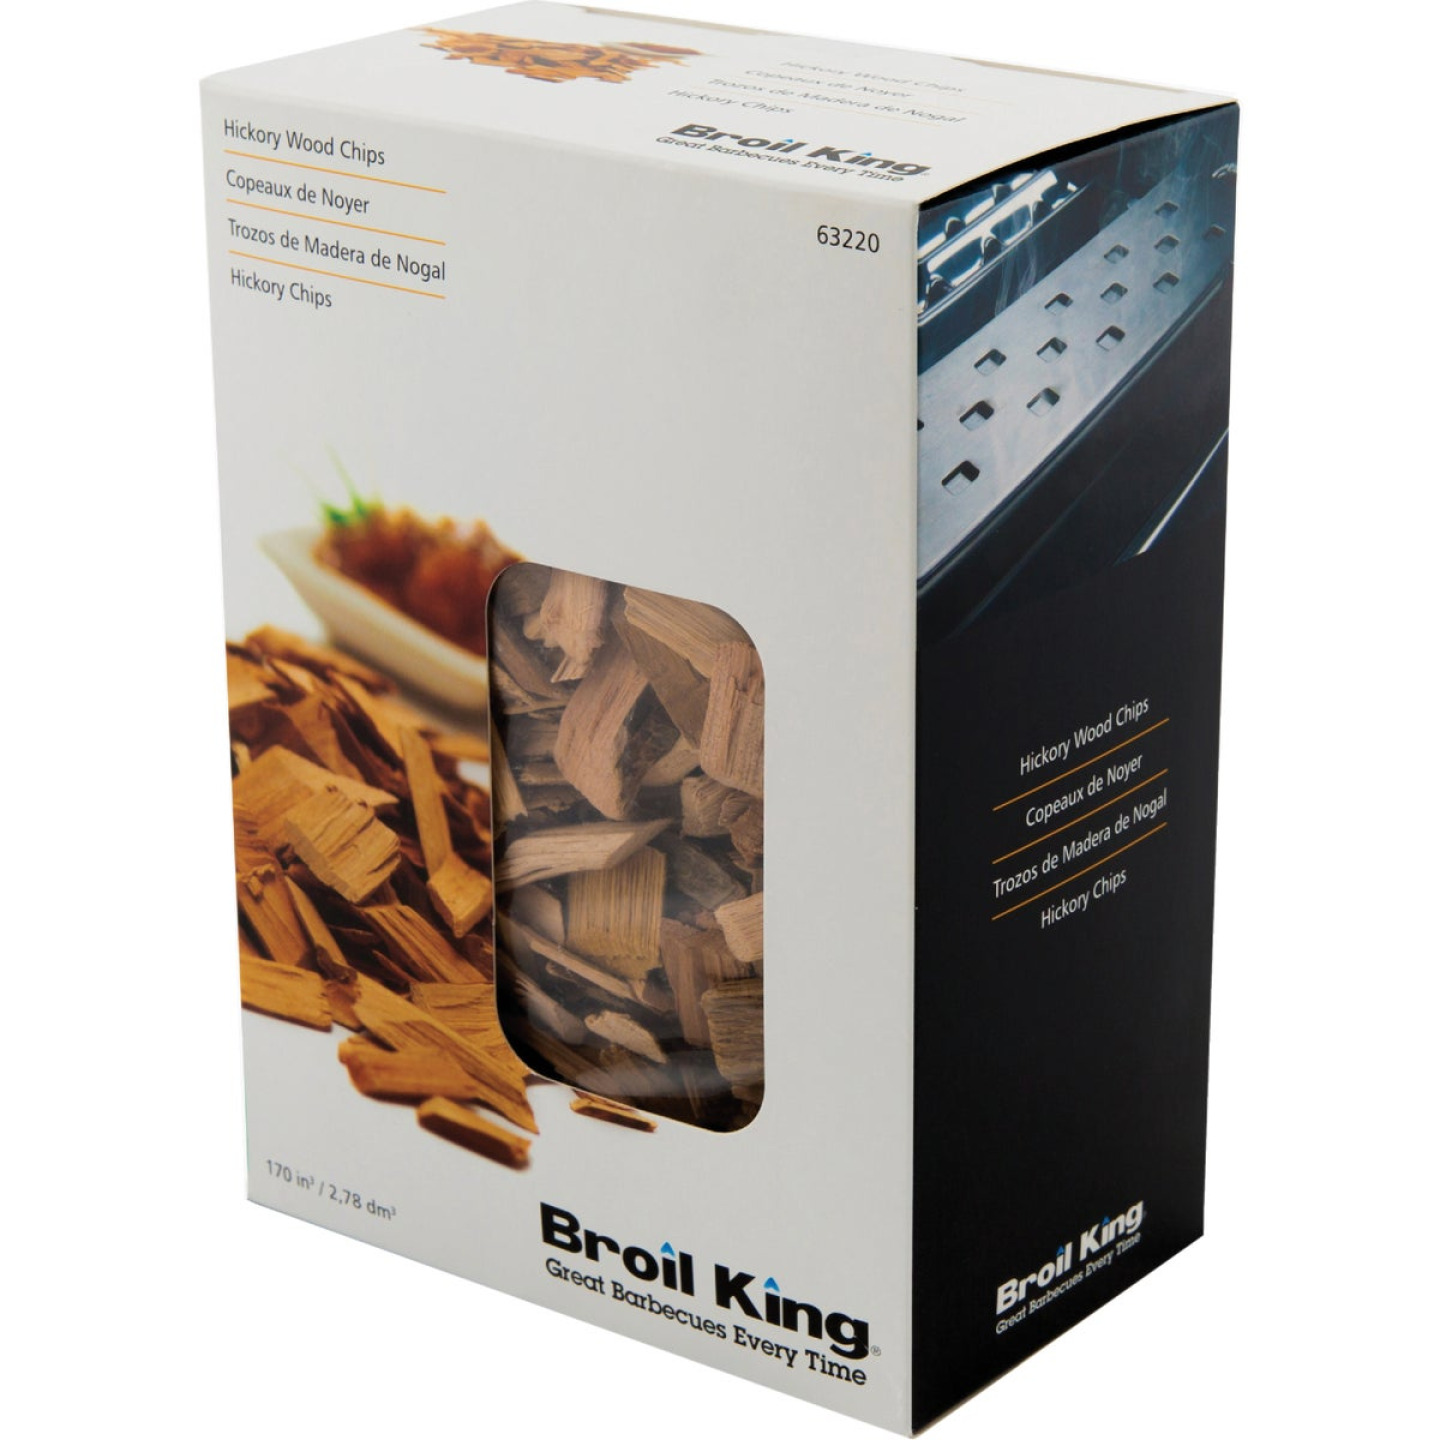 Broil King 170 Cu. In. Hickory Wood Smoking Chips Image 1